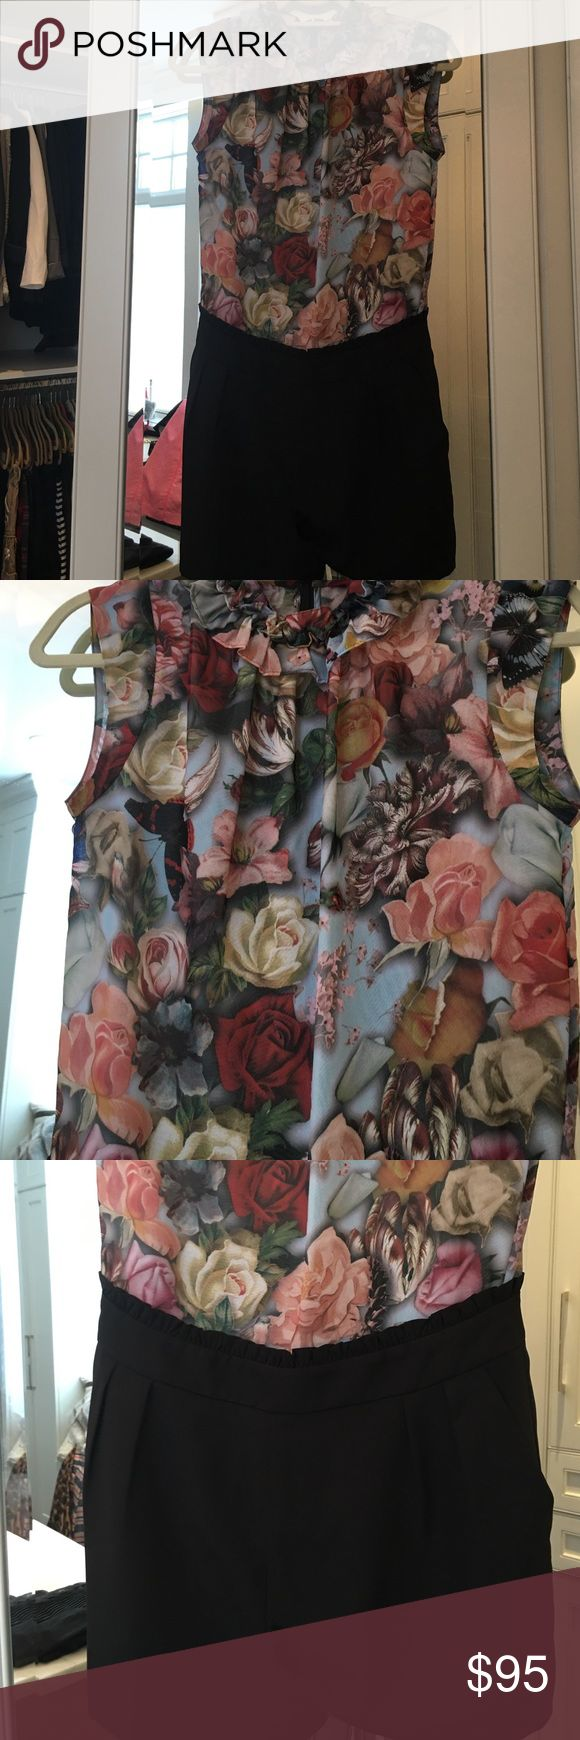 Ted Baker romper Floral romper super cute worn once Ted Baker Shorts